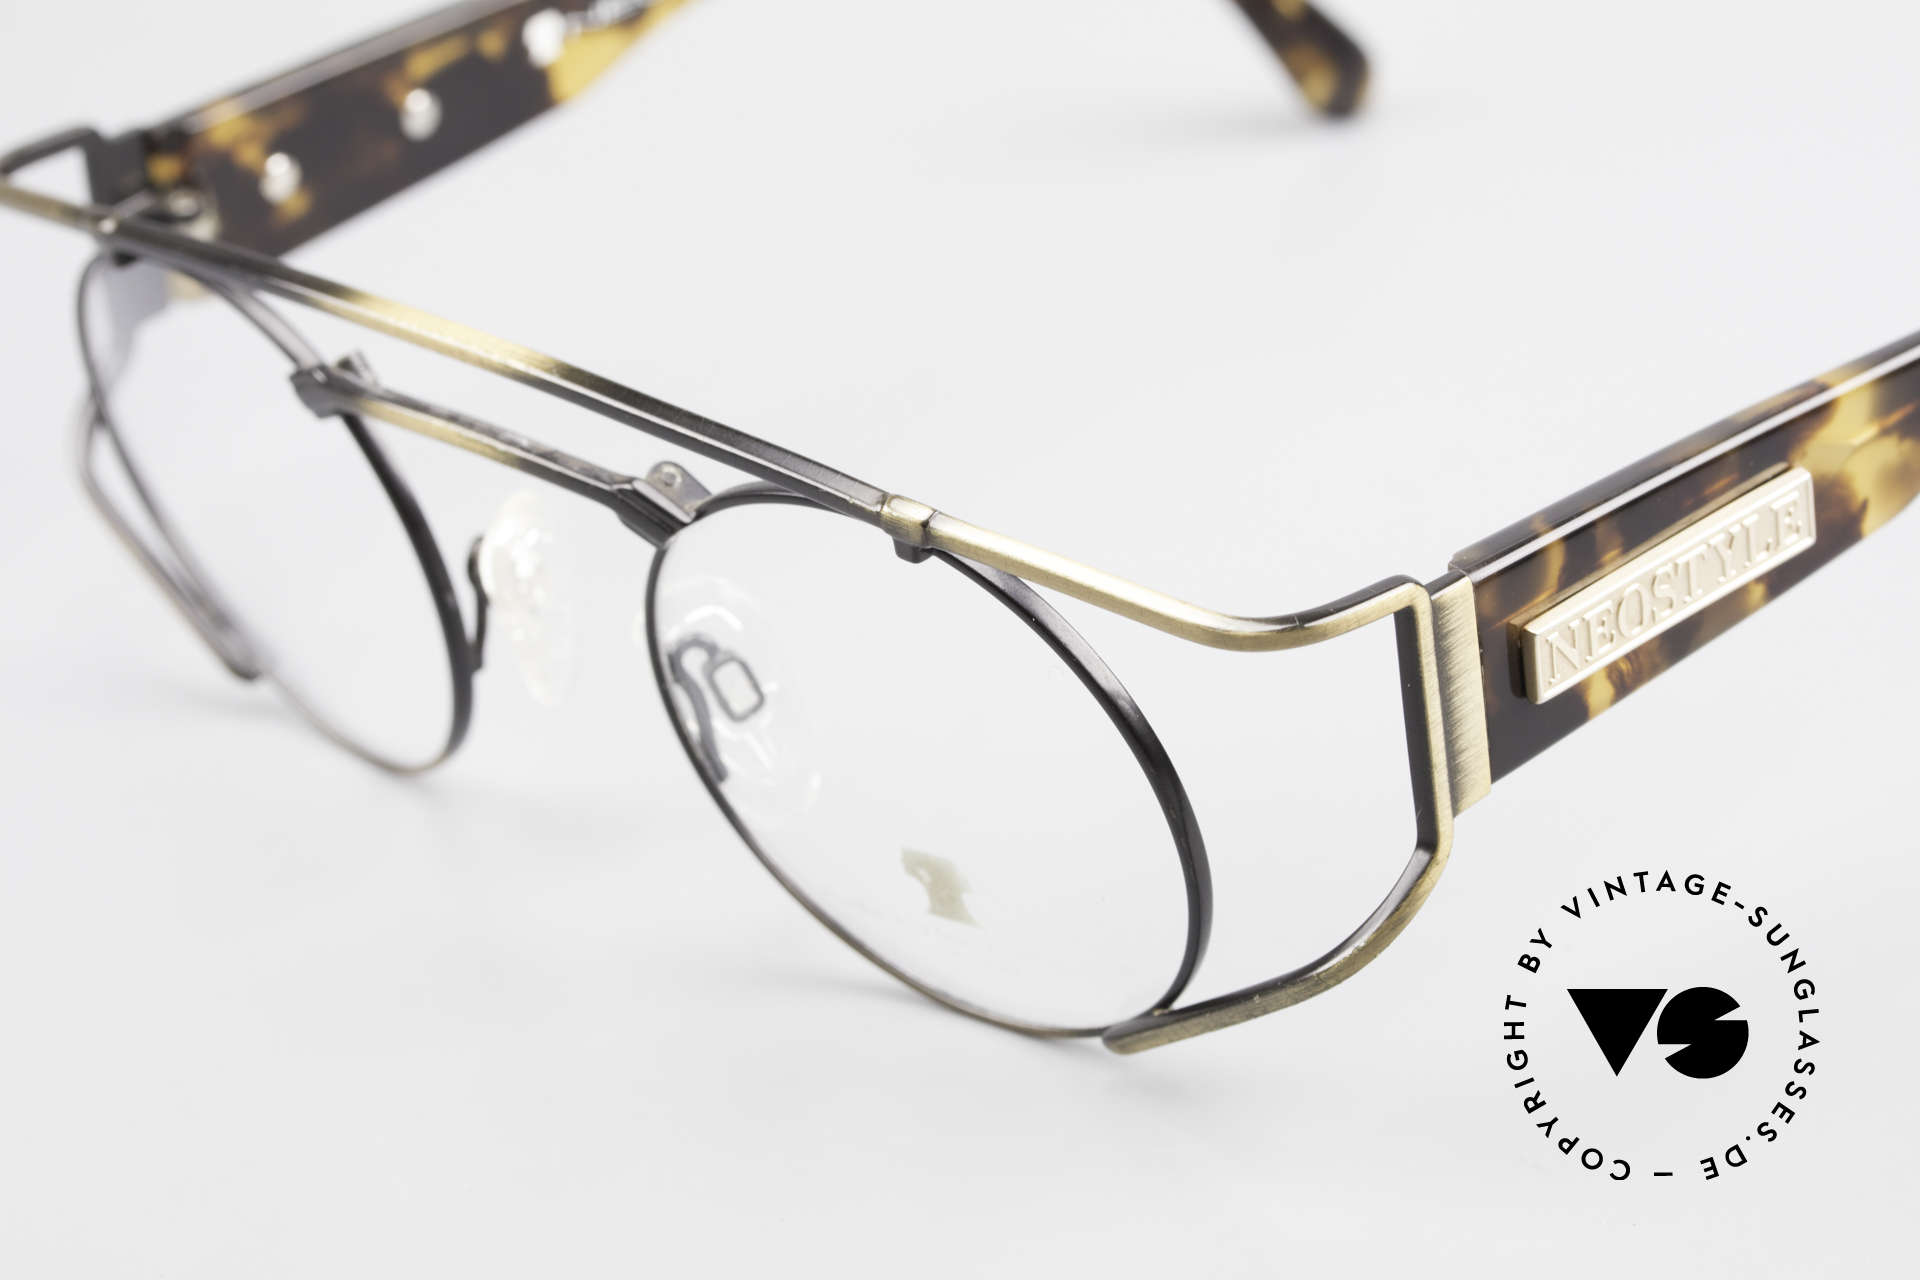 Neostyle Superstar 1 Steampunk Vintage Eyeglasses, metal parts in a kind of 'antique gold / burnt gold', Made for Men and Women